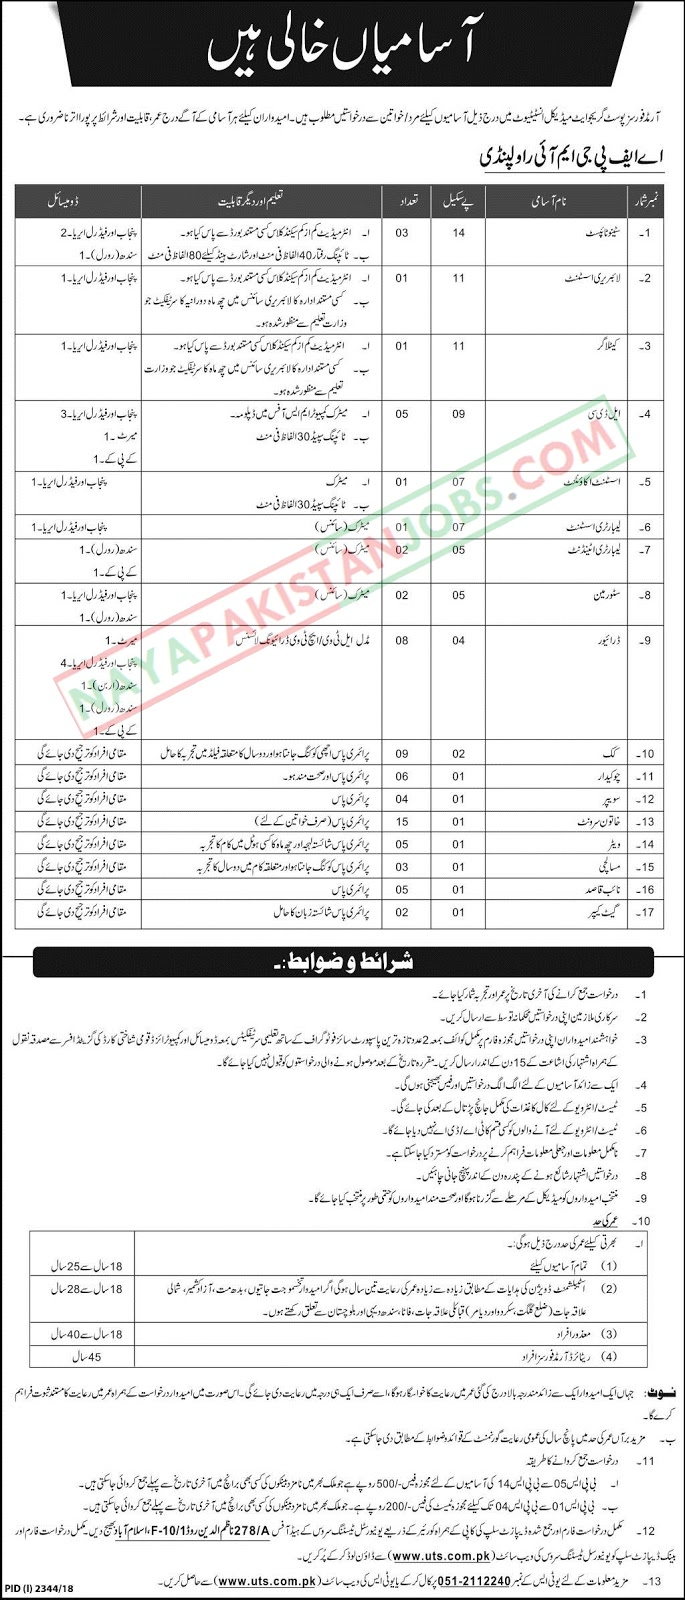 AFPGMI Jobs Application Form, Armed Forces Post Graduate Medical Institute Jobs Dec 2018